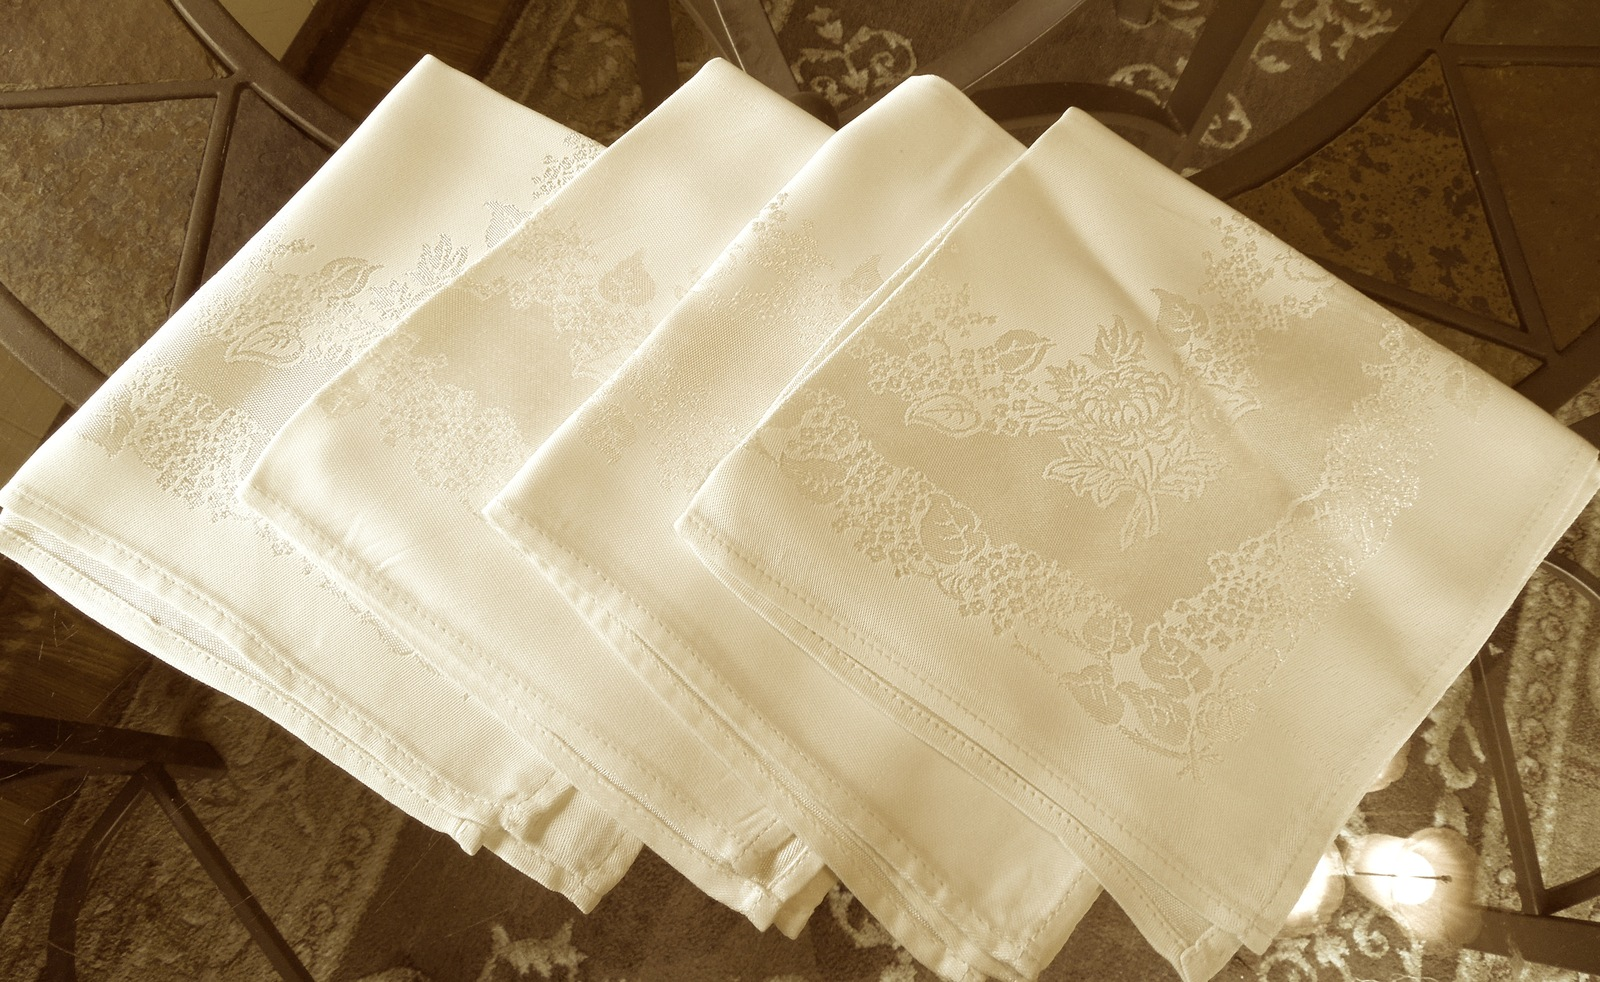 Apt bedroom dresser drawer 1   set of 4 appears to be satin damask table napkins  floral   ivory  approx 15 x 15 2 tiny tiny spots see photos   pd 5.00 for all 5 4 13 gar sale  89123